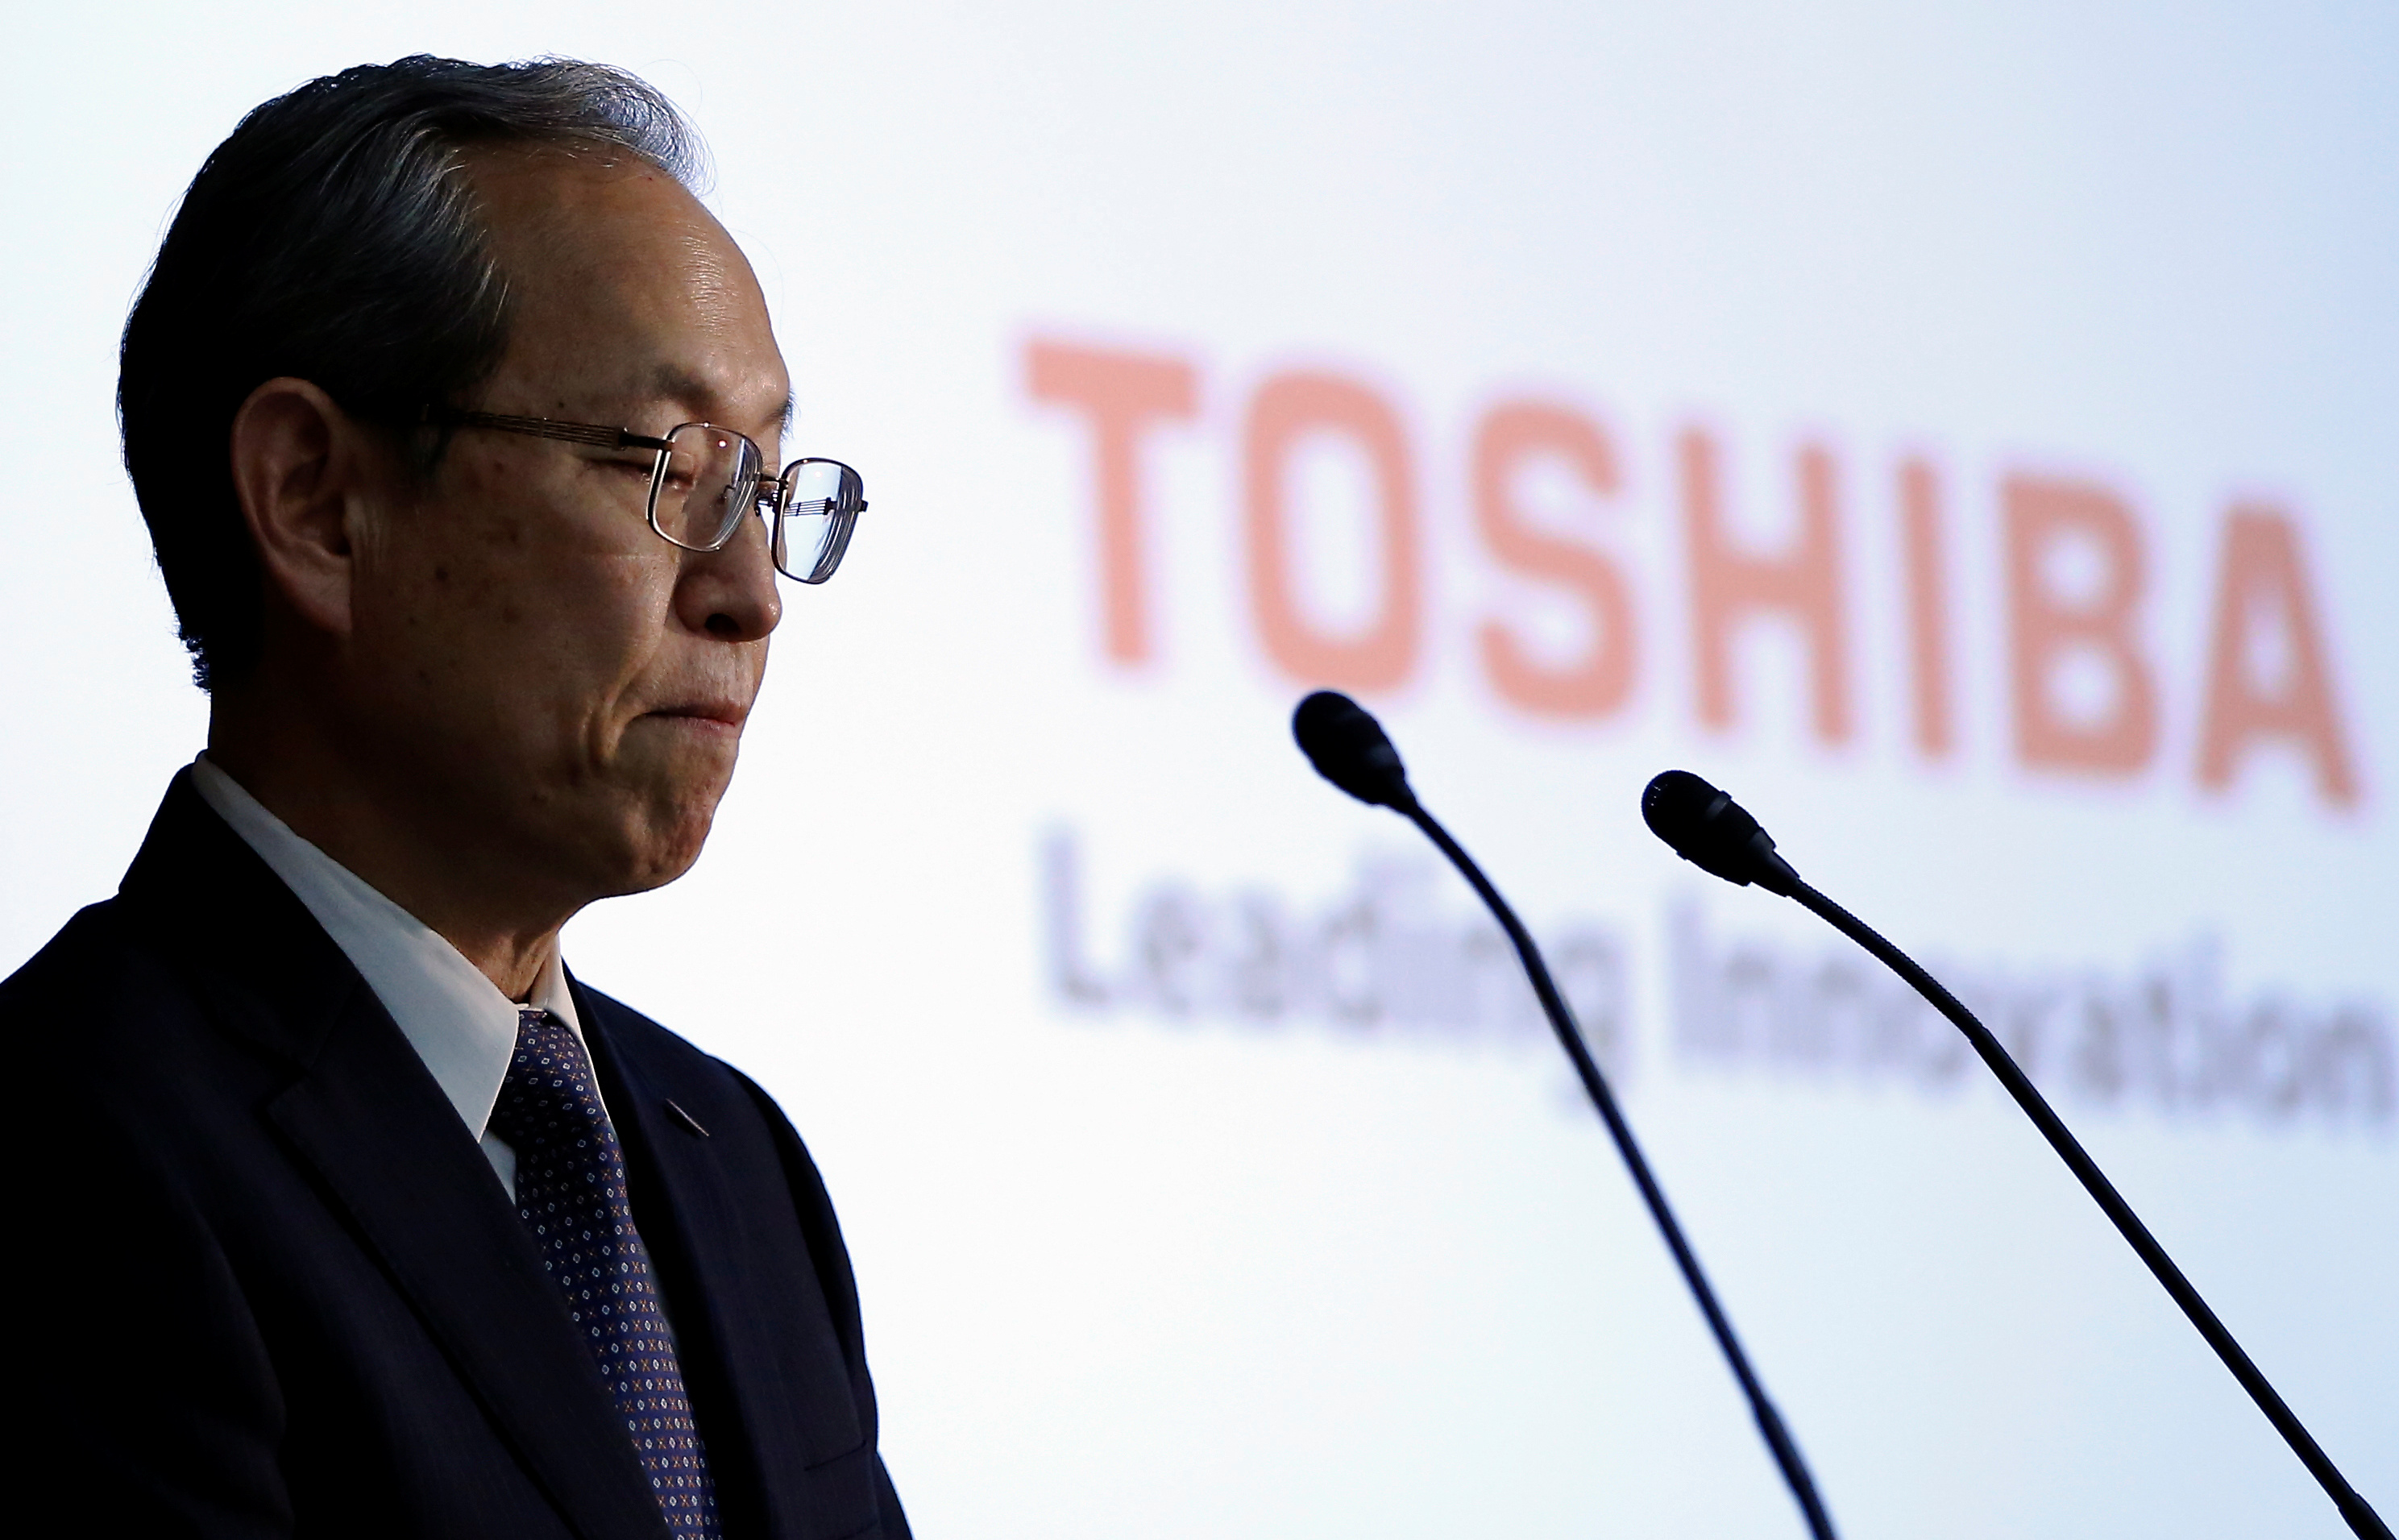 Toshiba Corp CEO Satoshi Tsunakawa attends at a news conference after asking regulators for extension on financial filing and deal on chip unit sale, at the company headquarters in Tokyo